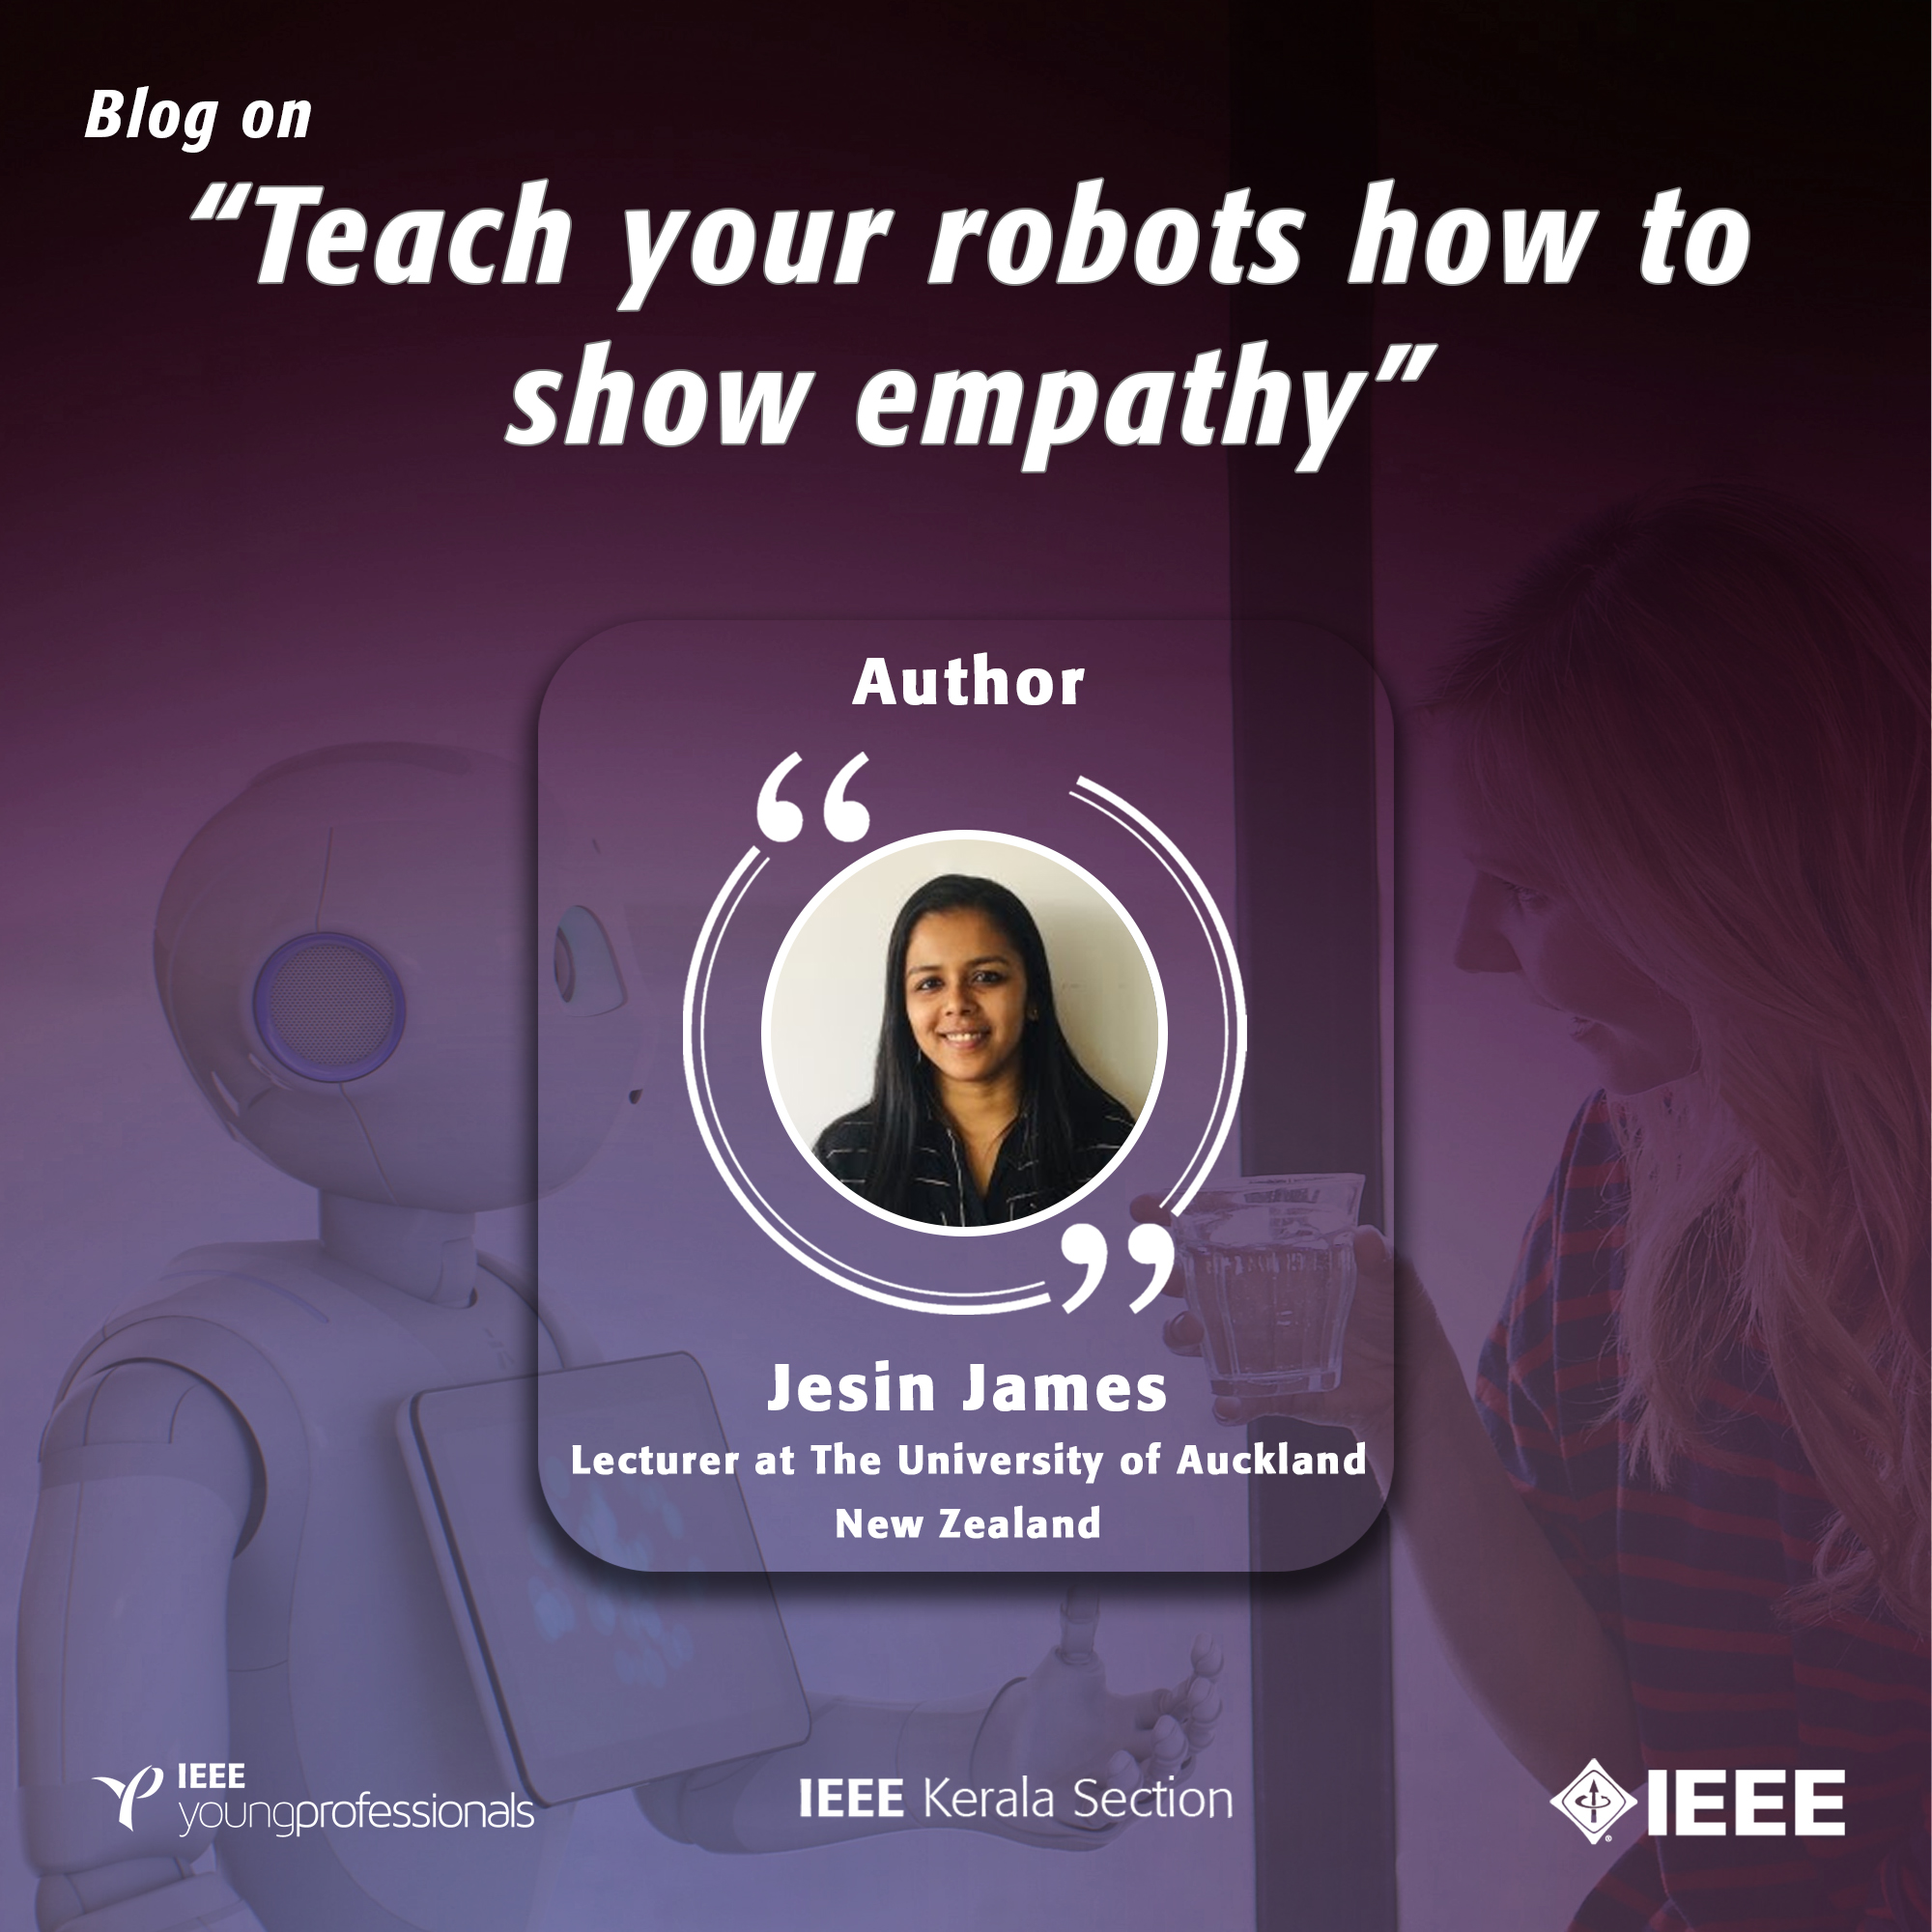 Teach your robots how to show empathy